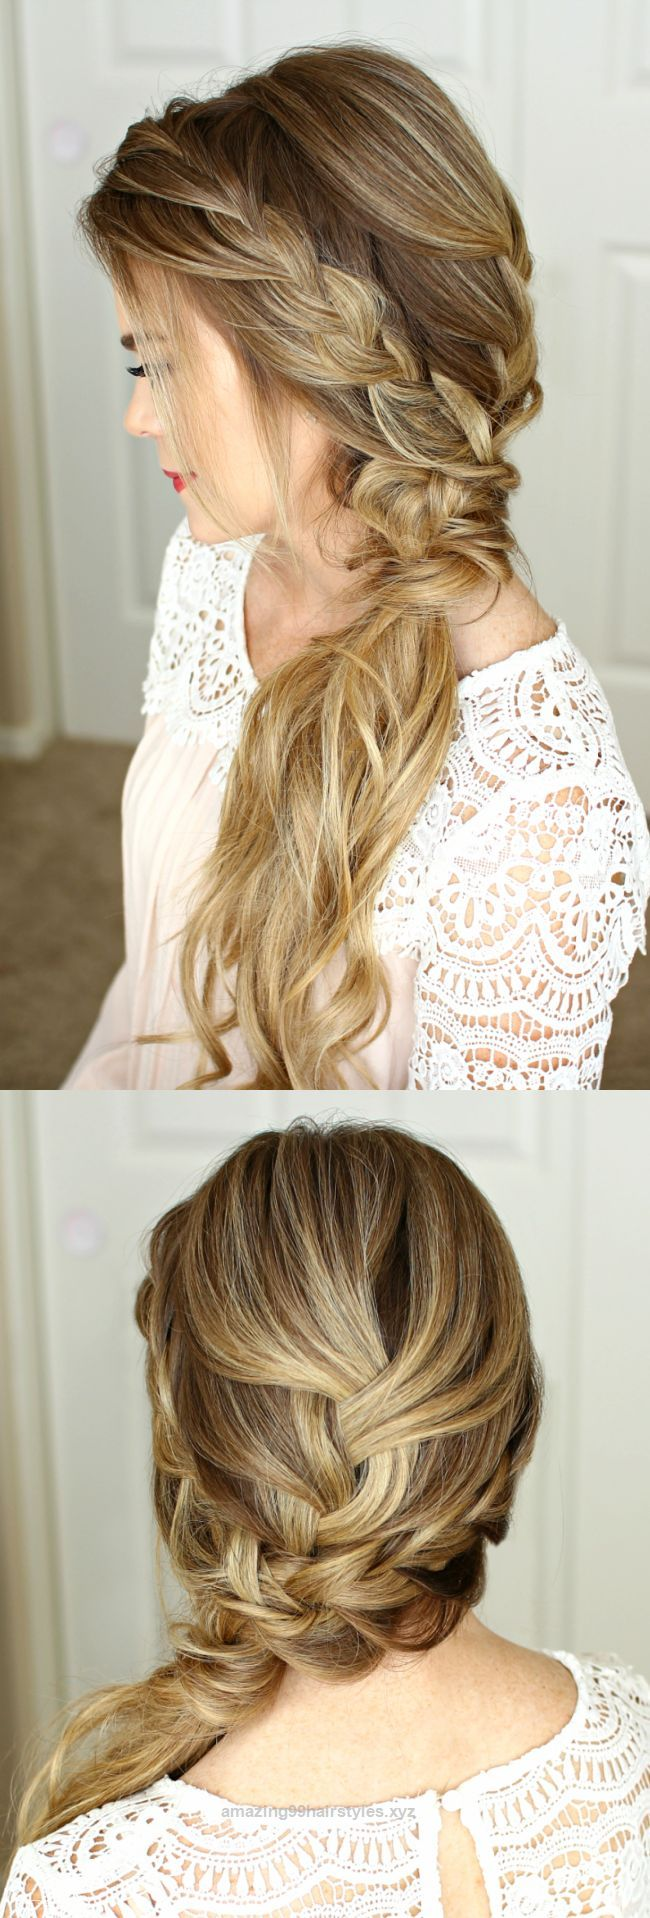 Wonderful Prom is coming up and I've had so many requests for hair tutorials! I always post updos so I wanted to change things up and post something new. Last week I shared a simple half up style  ..